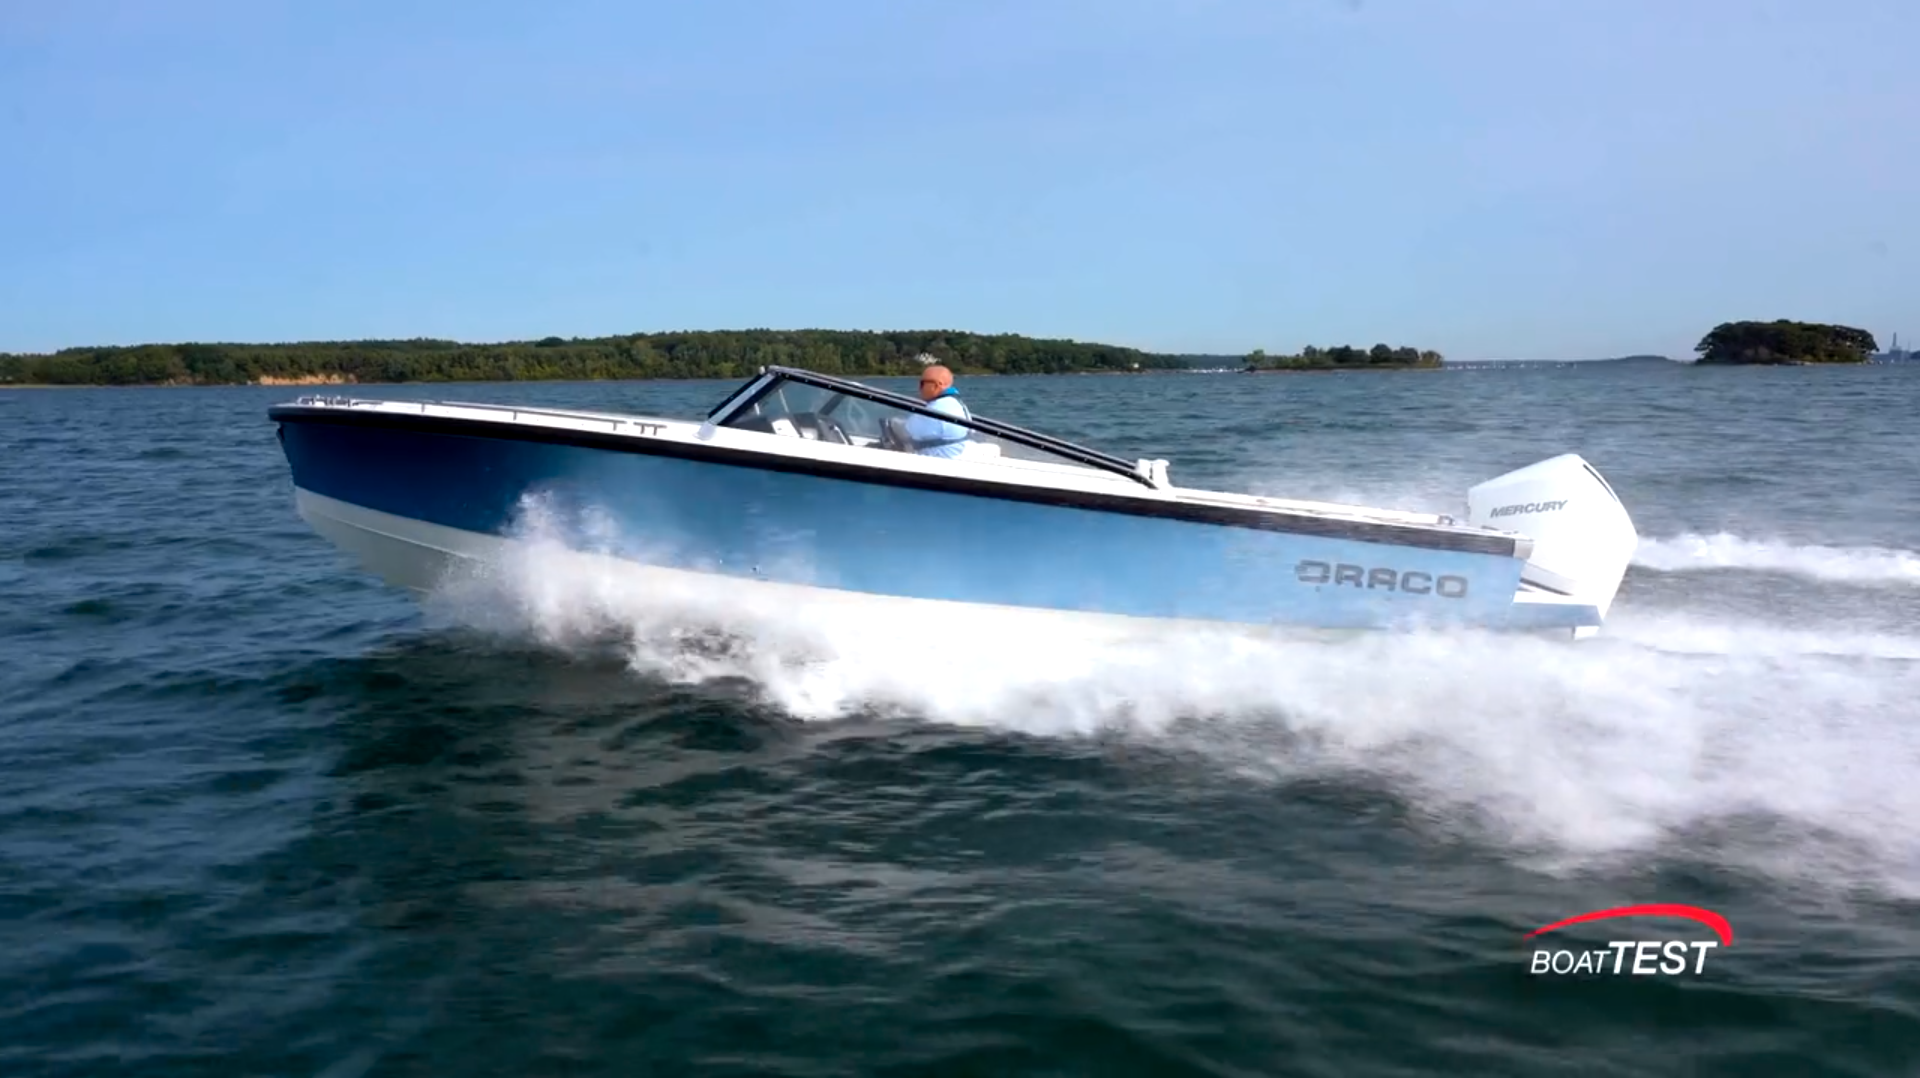 Boat Test Review of Draco 27